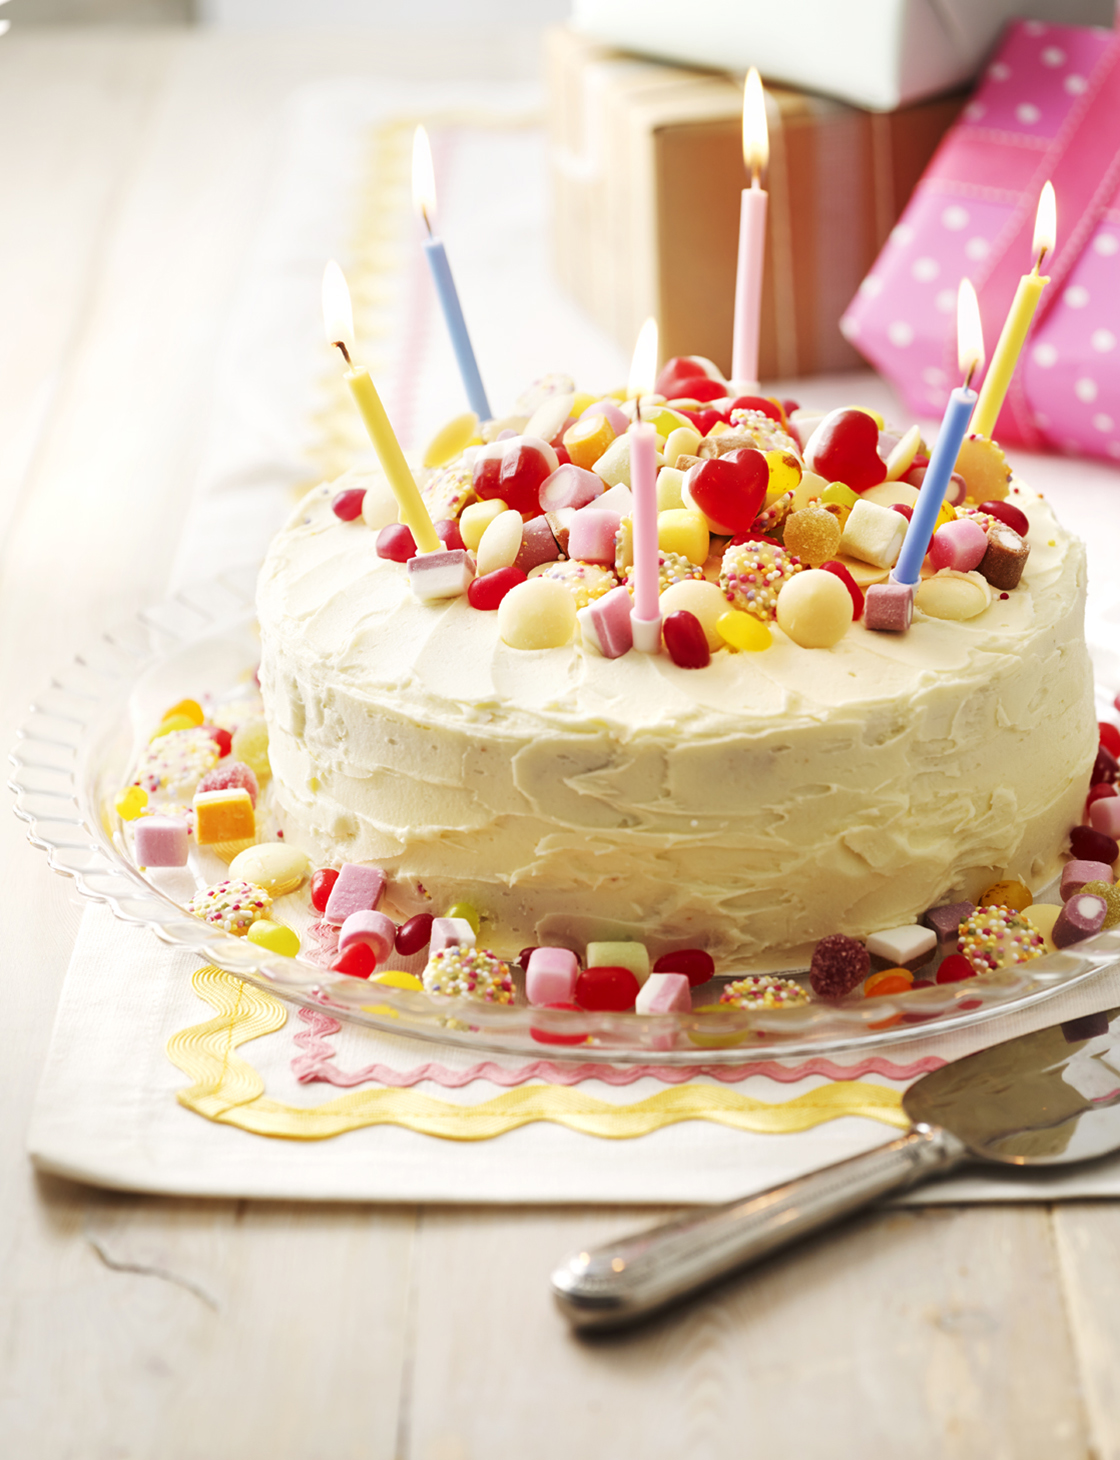 Sweetie Birthday Cake Sainsbury S Magazine